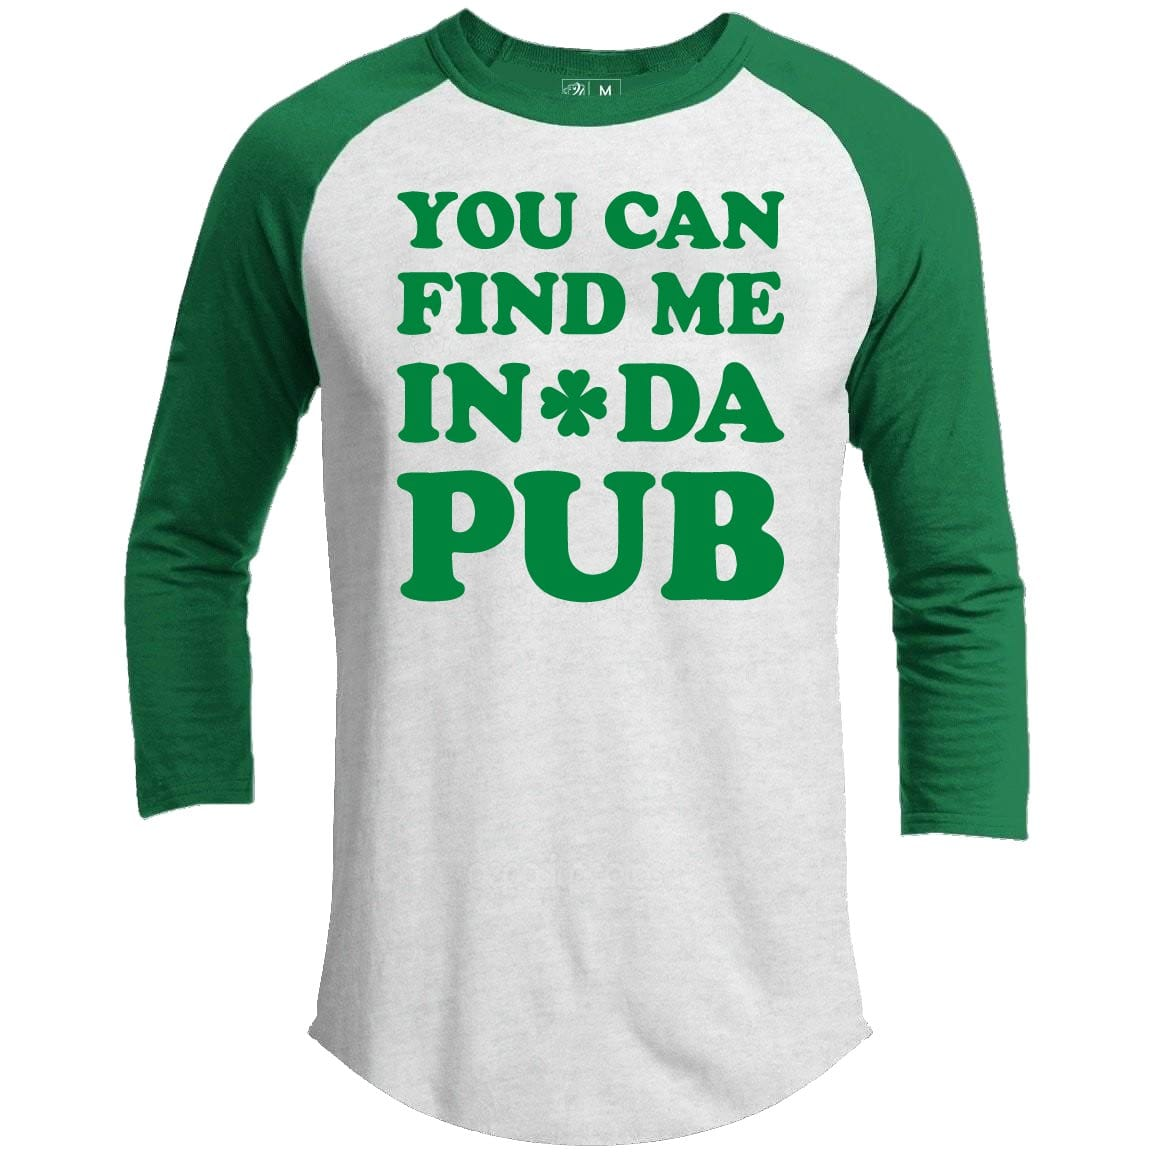 Find Me In Da Pub St. Patrick's Day Raglan